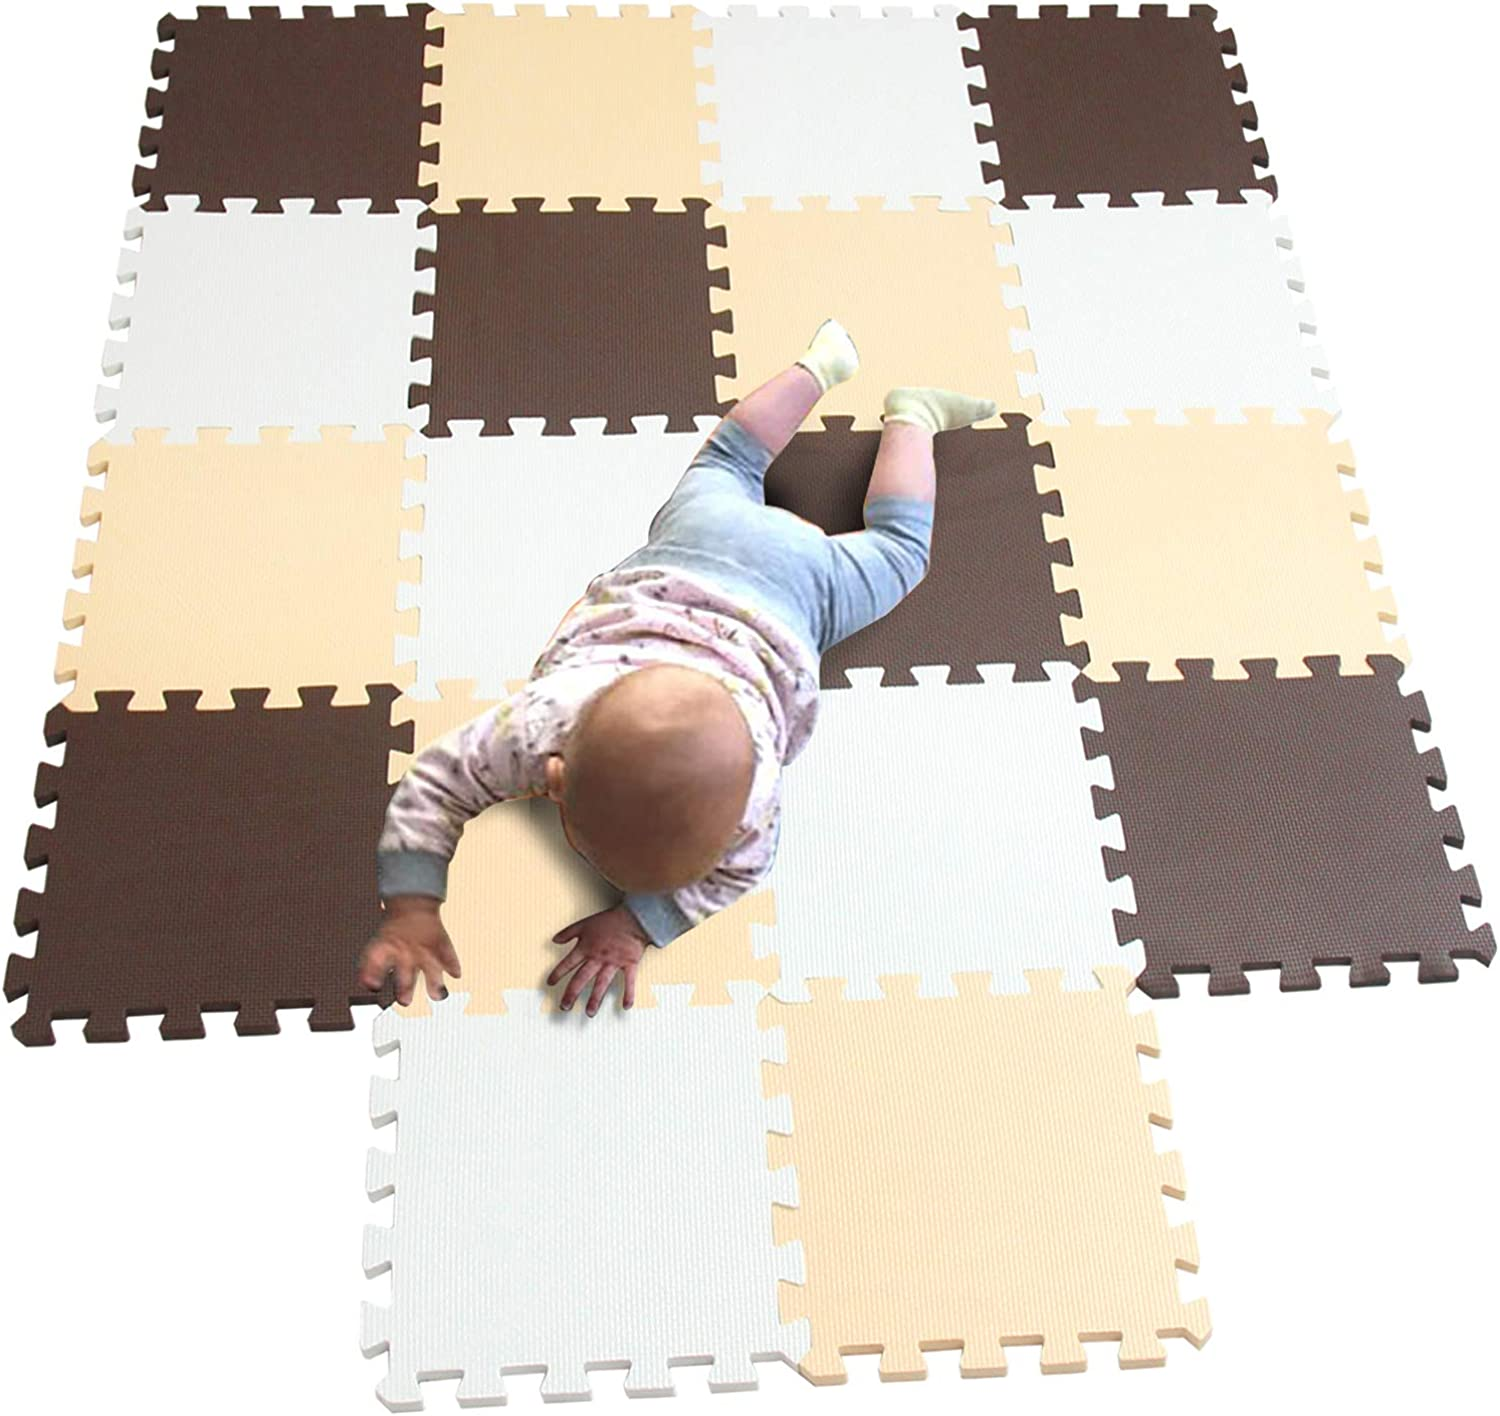 MQIAOHAM 18 pcs White-Coffee-Beige Waterproof Indoor Best Yard Thick Antiskid Cushion Safety Tile Activity Boys Predector Non Slip Exercise Safe 101106110